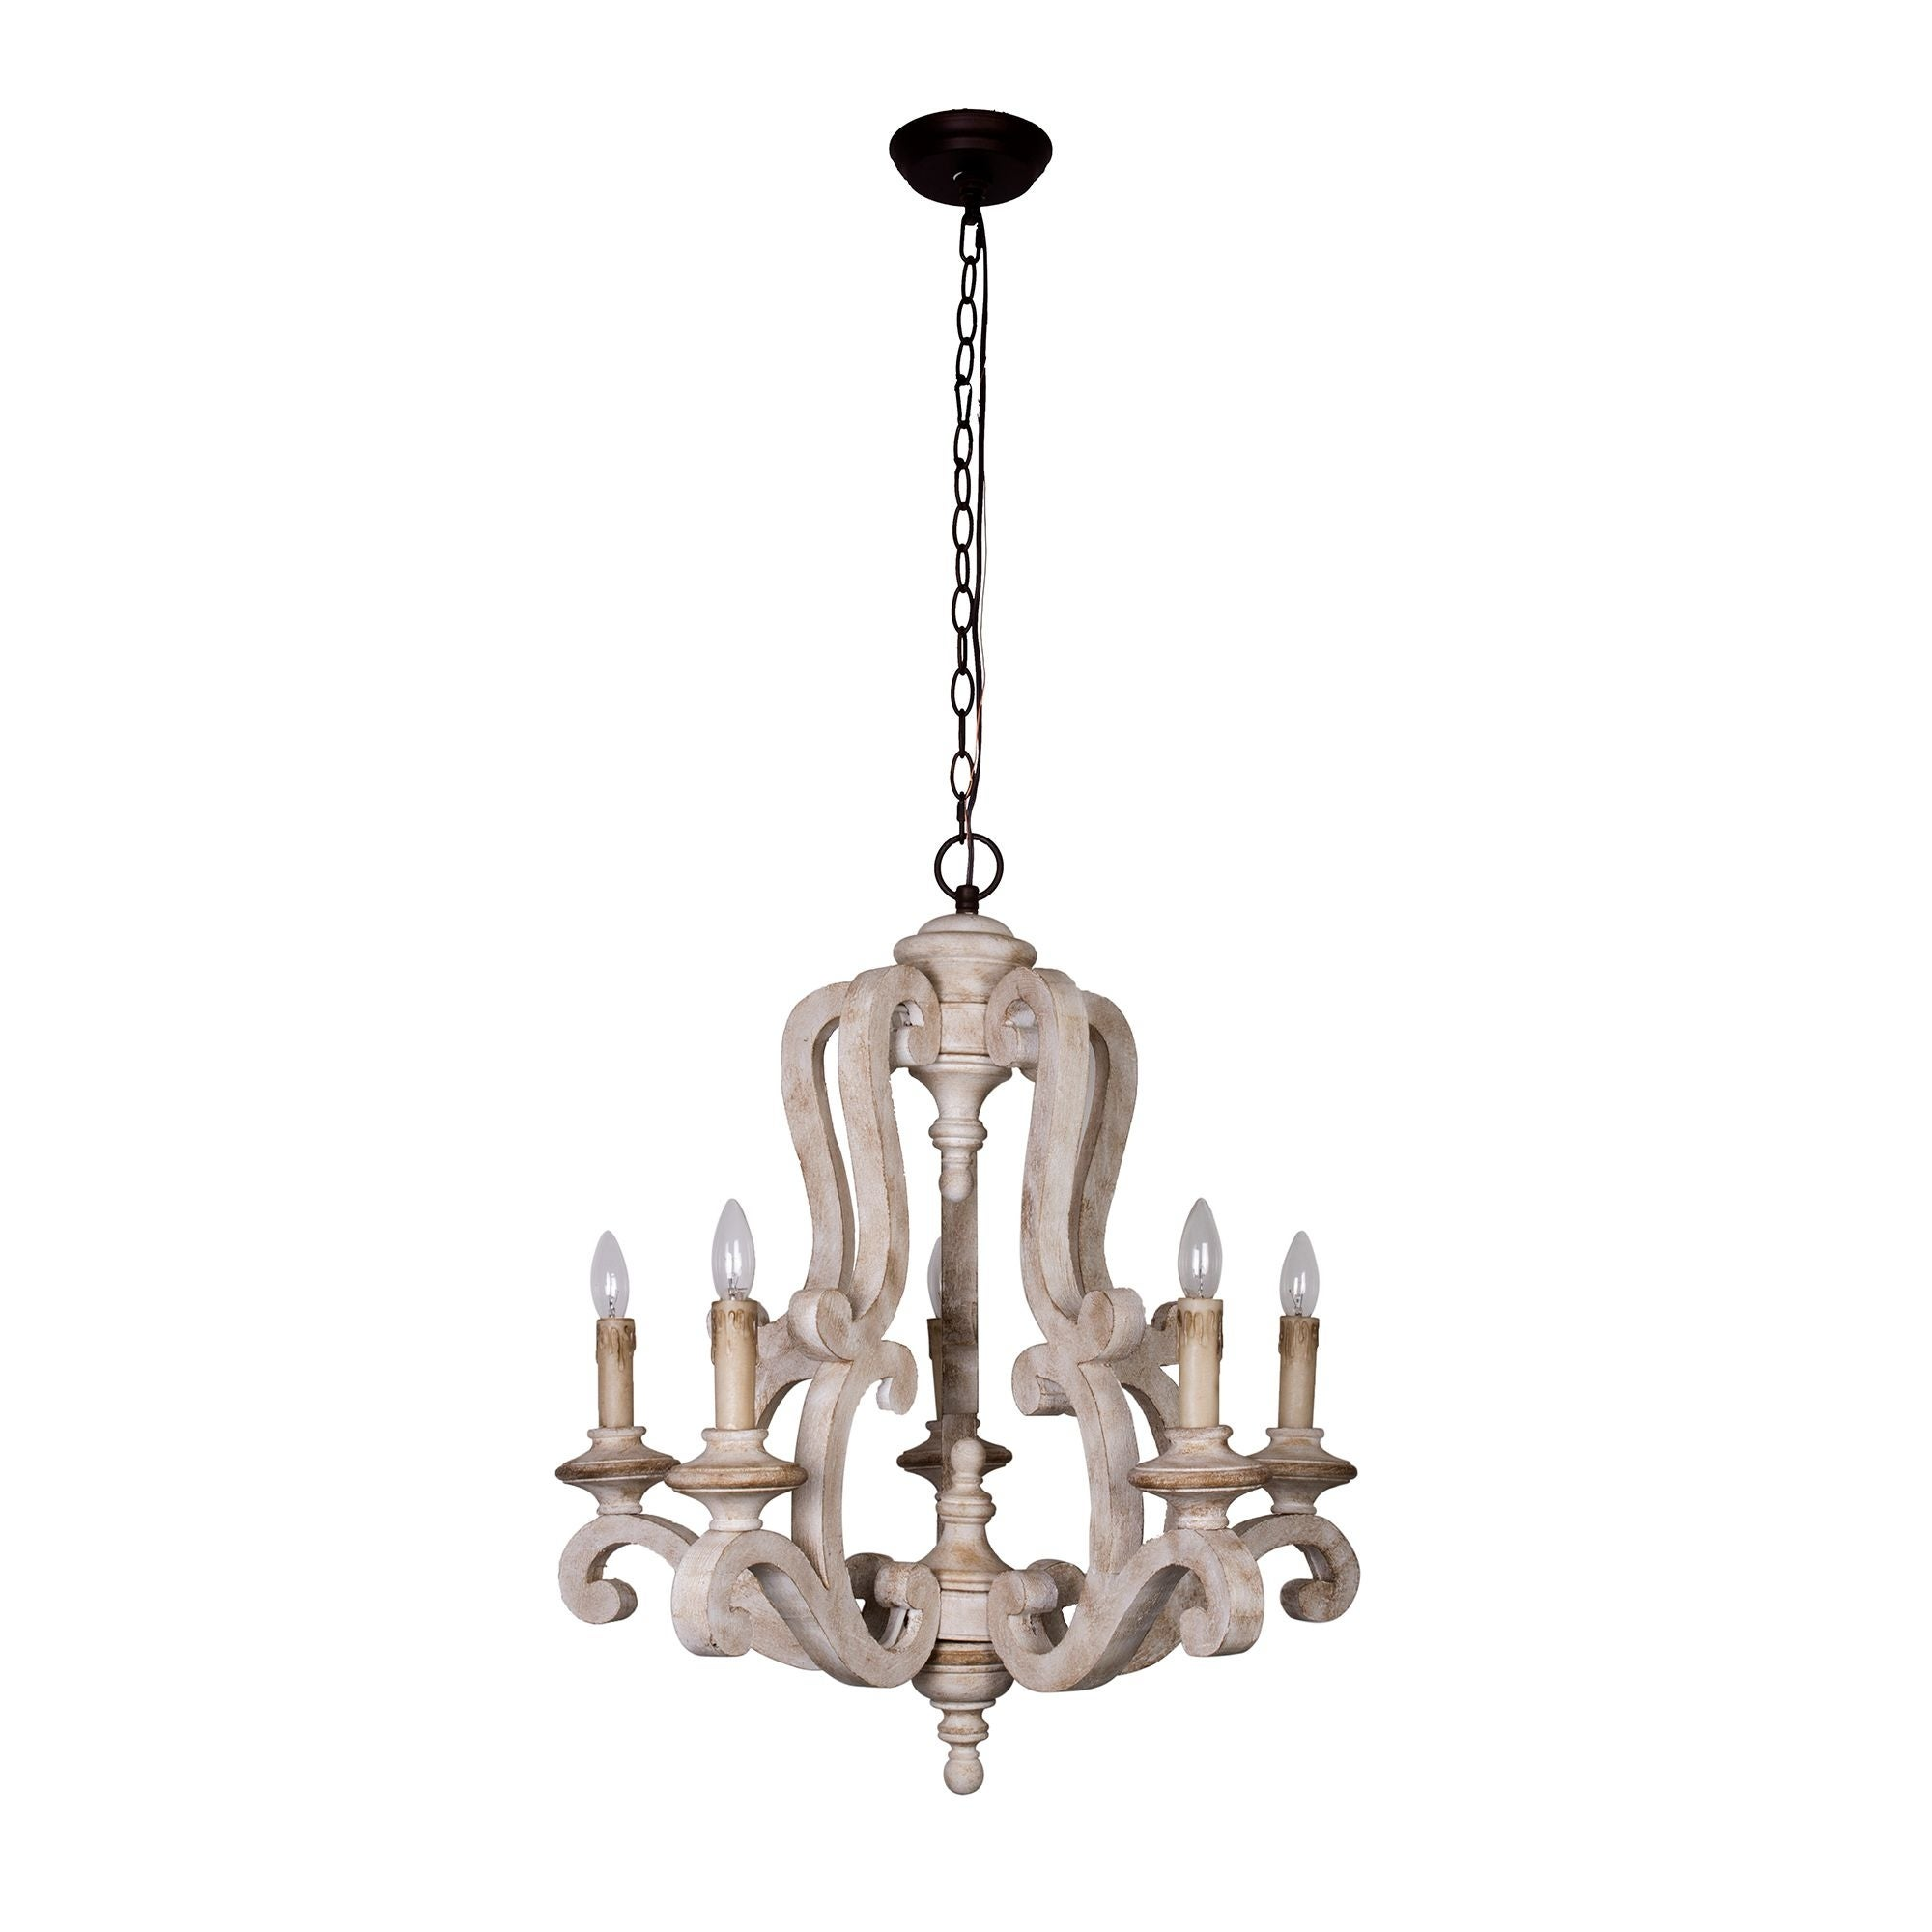 Rustic 5 light distressed antique white wood chandelier free rustic 5 light distressed antique white wood chandelier free shipping today overstock 26706550 aloadofball Gallery